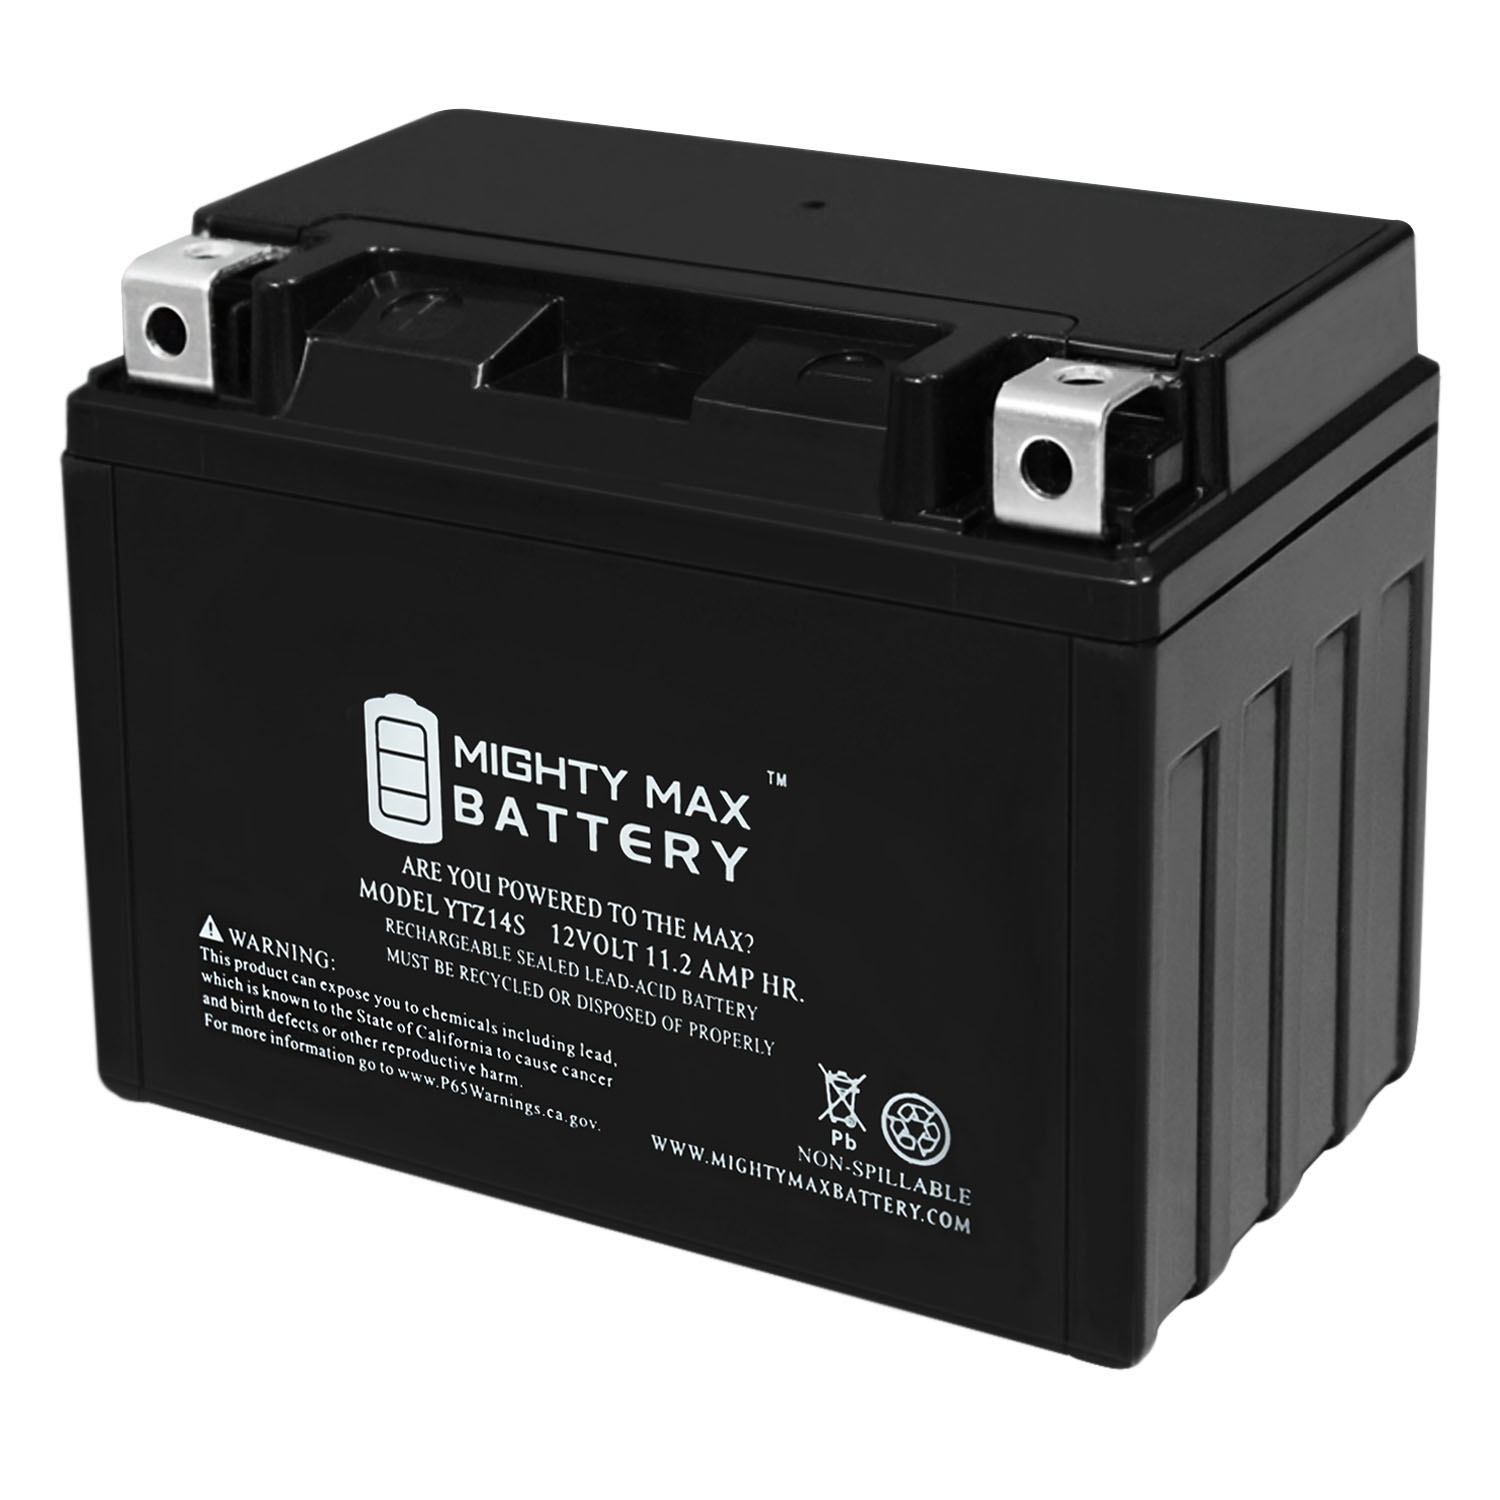 12V 11.2Ah Battery for KTM 950 Superenduro '2009-'2011